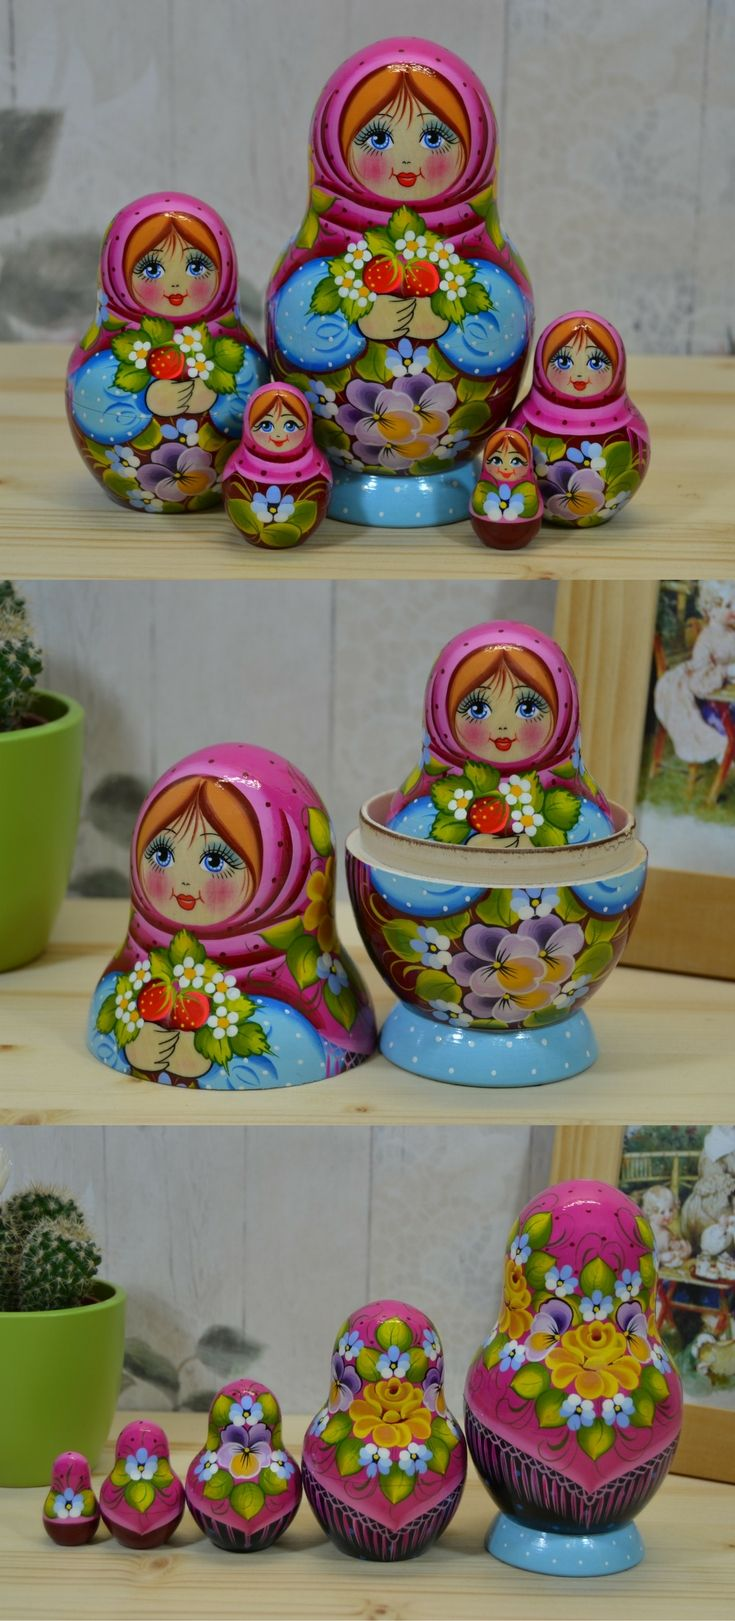 cute babushka doll in pink shawl